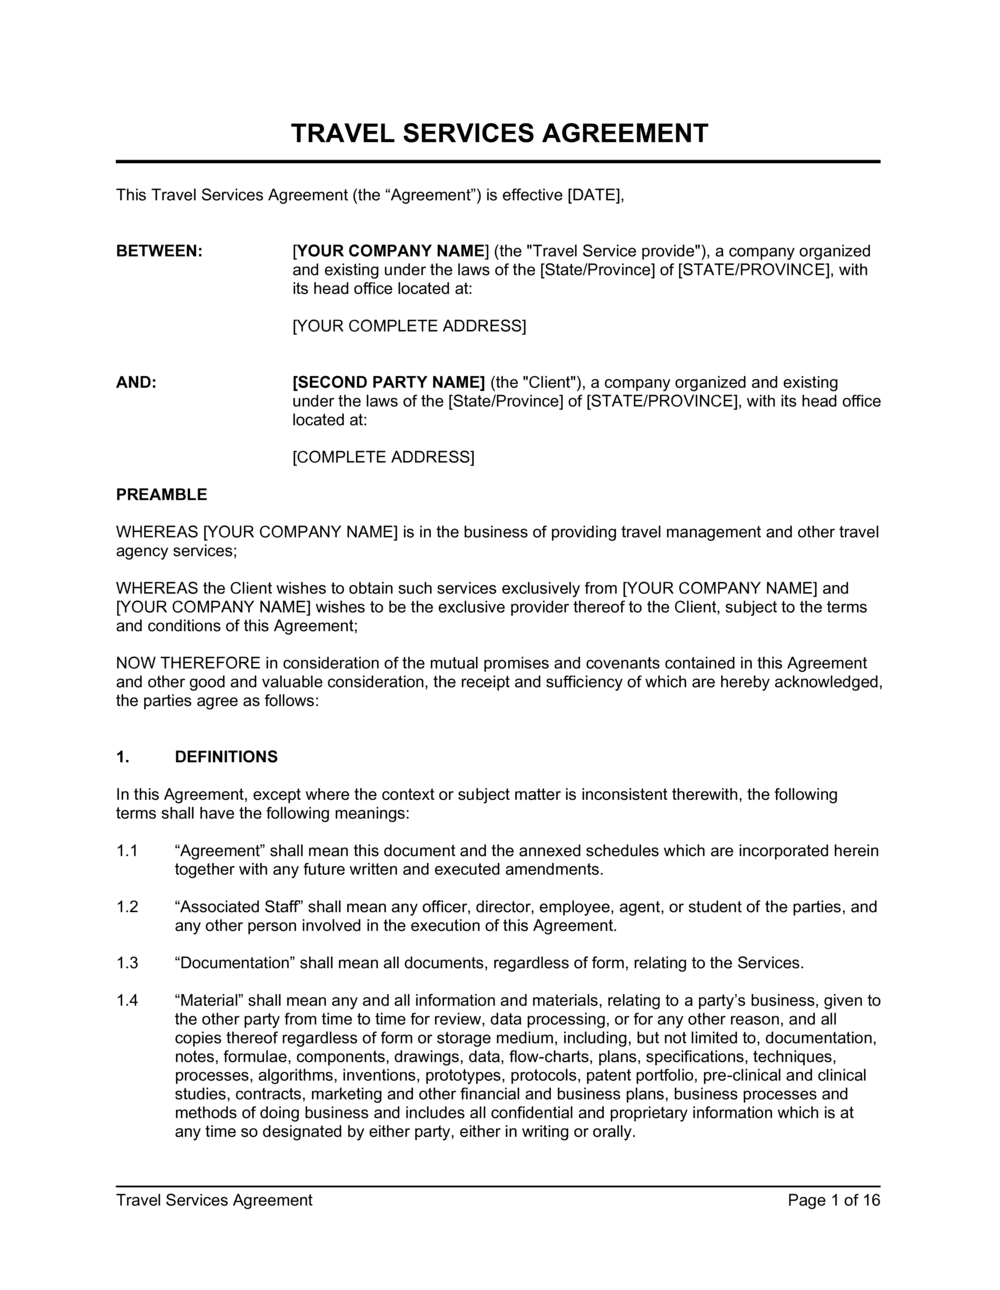 Business-in-a-Box's Travel Services Agreement Template